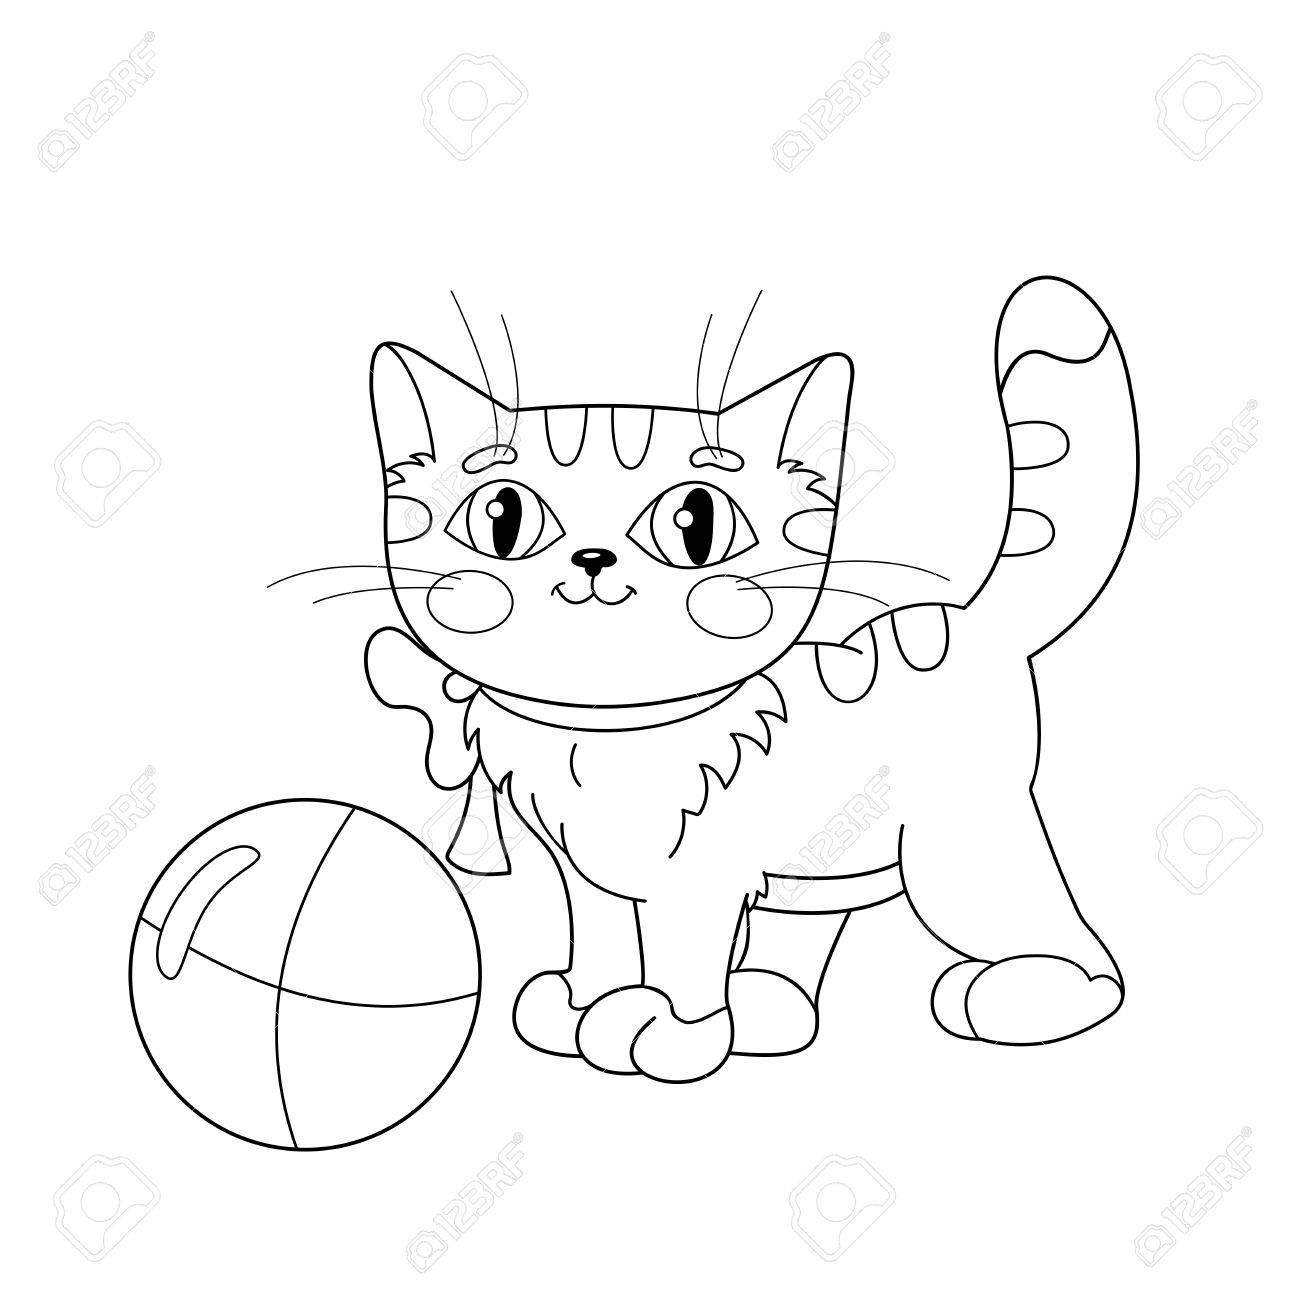 Coloring Page Outline Of A Fluffy Cat Playing With Ball. Coloring ...